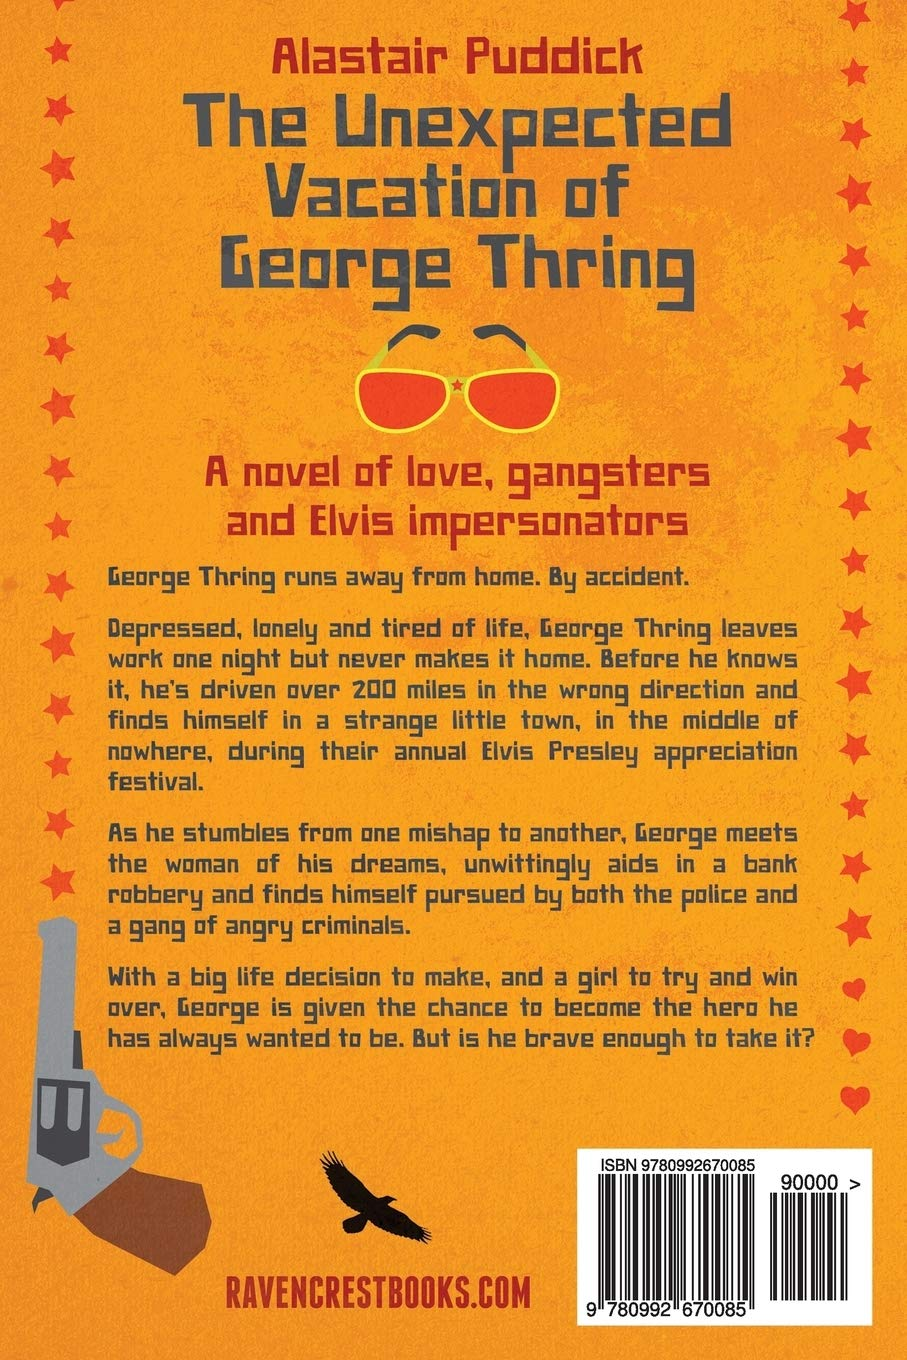 Download The Unexpected Vacation Of George Thring By Alastair Puddick